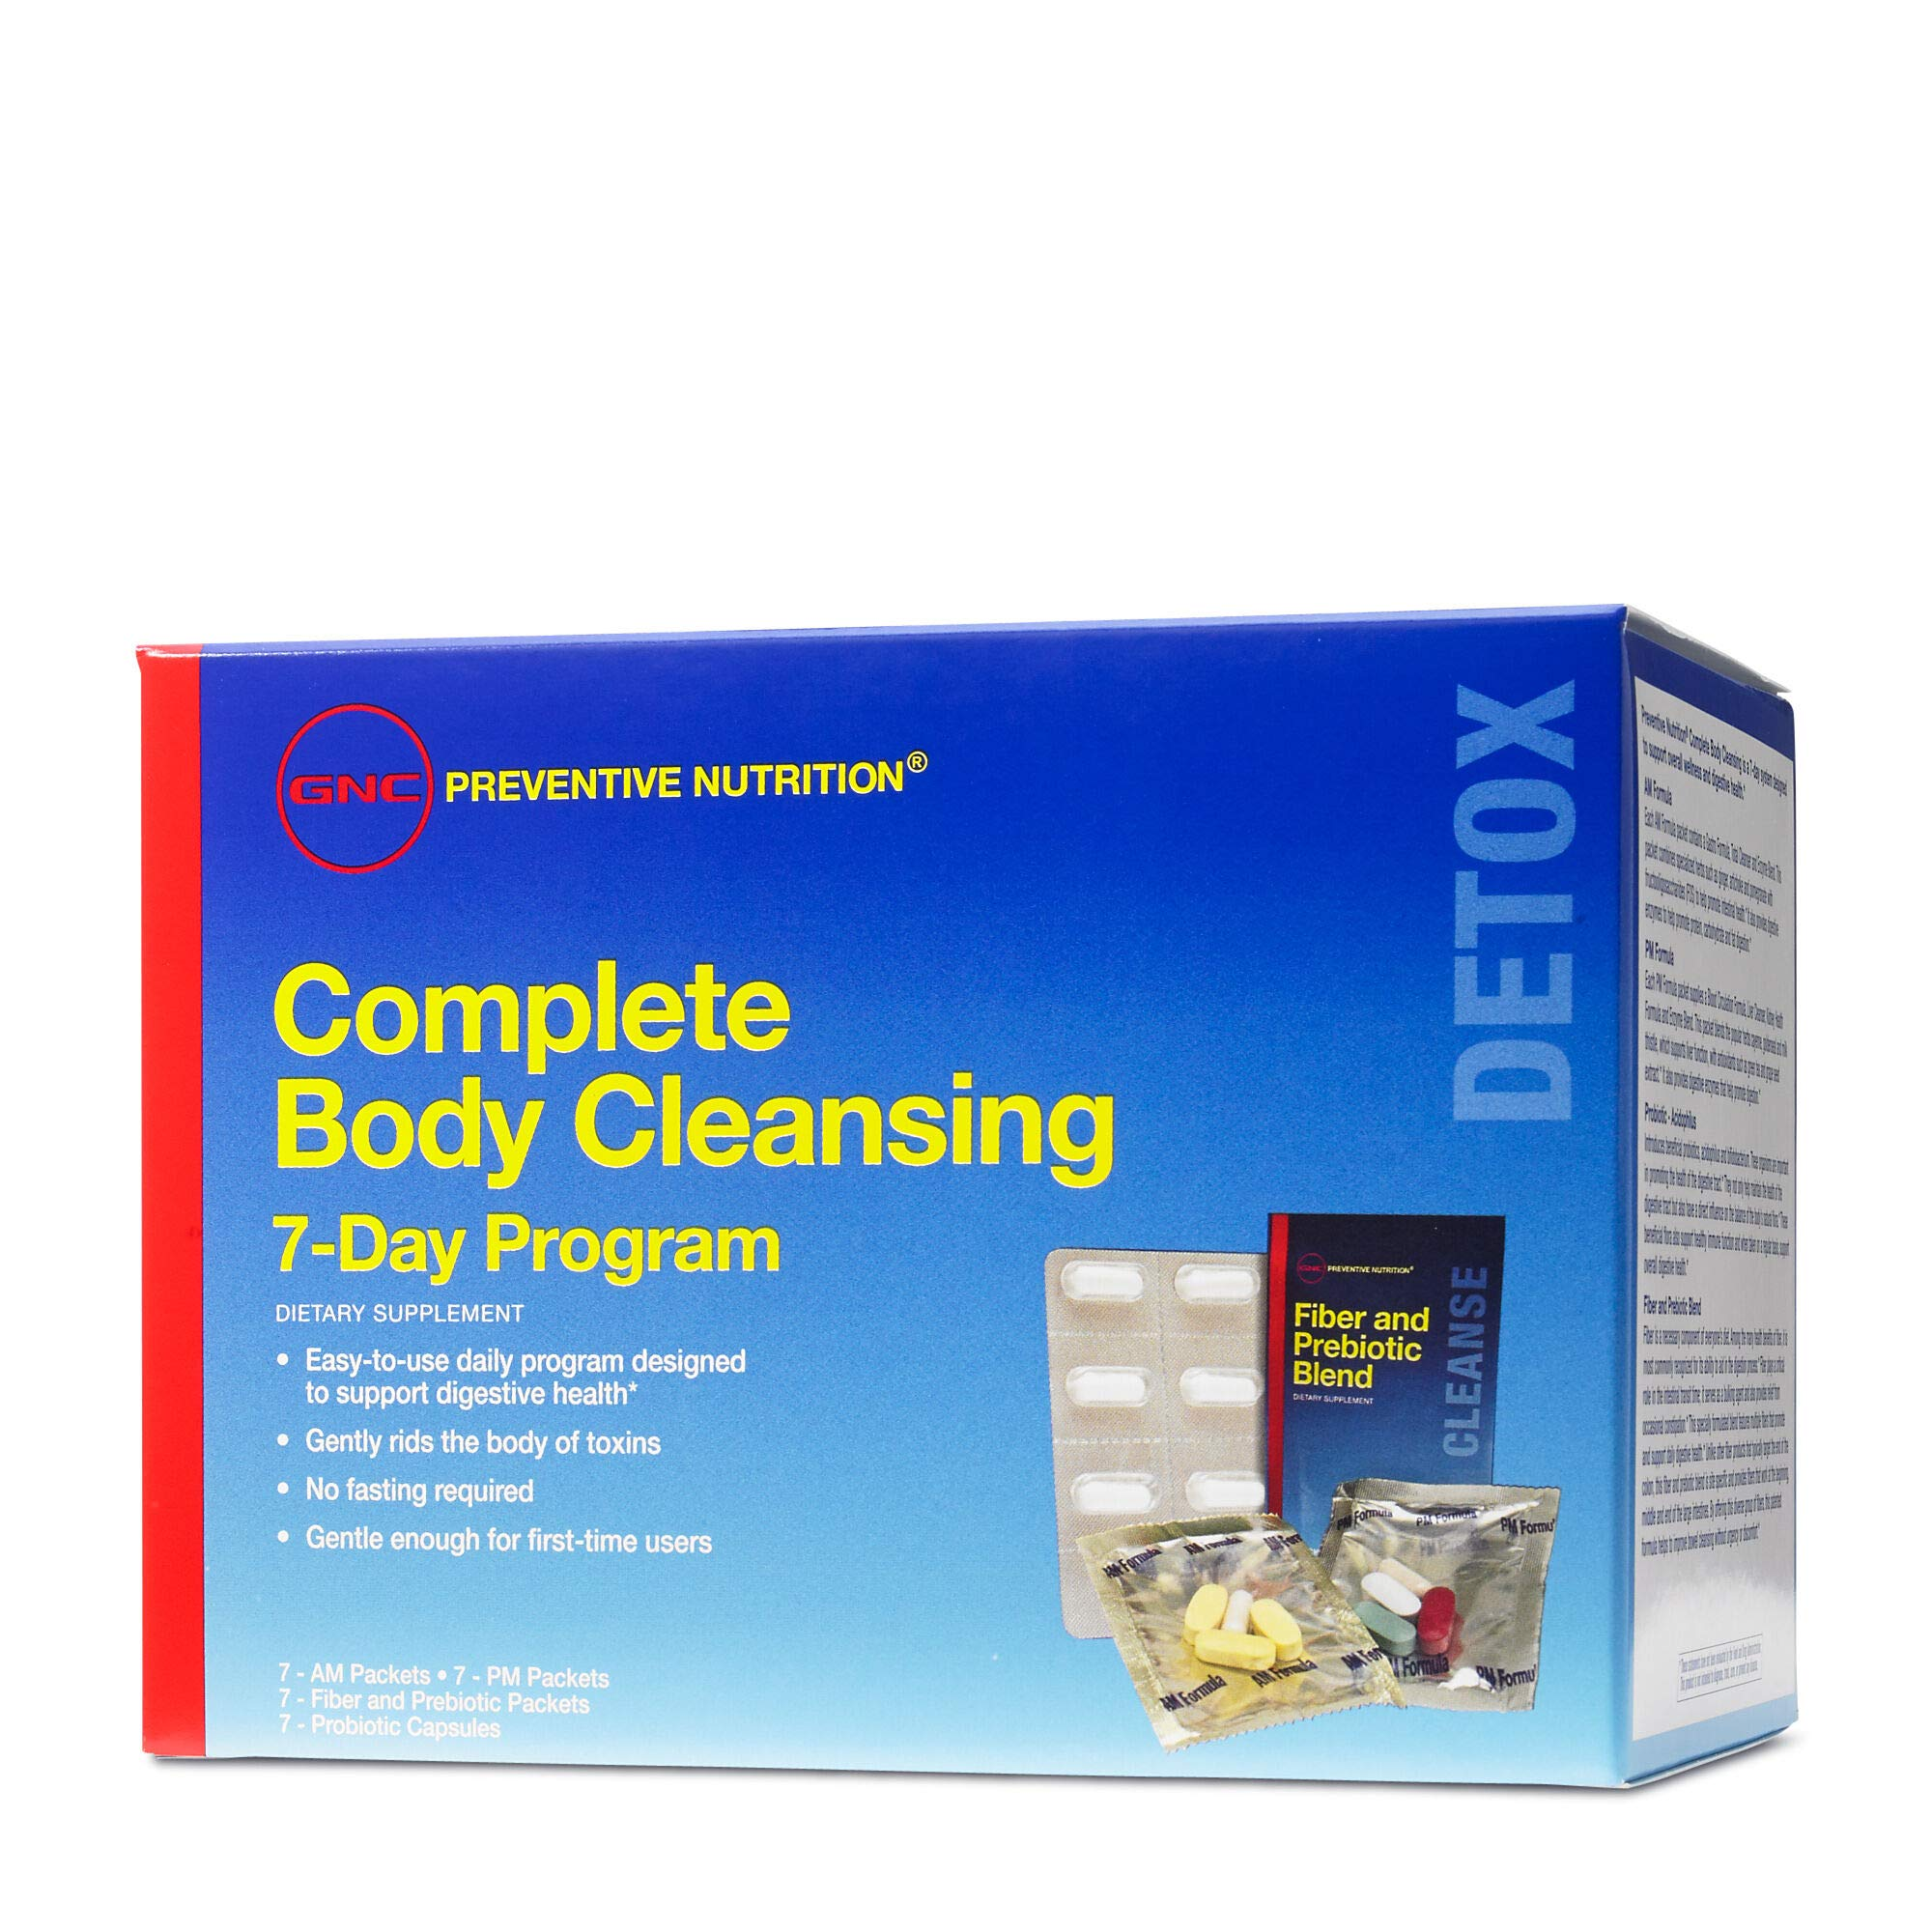 GNC Preventive Nutrition Complete Body Cleansing Program 7 Days by GNC